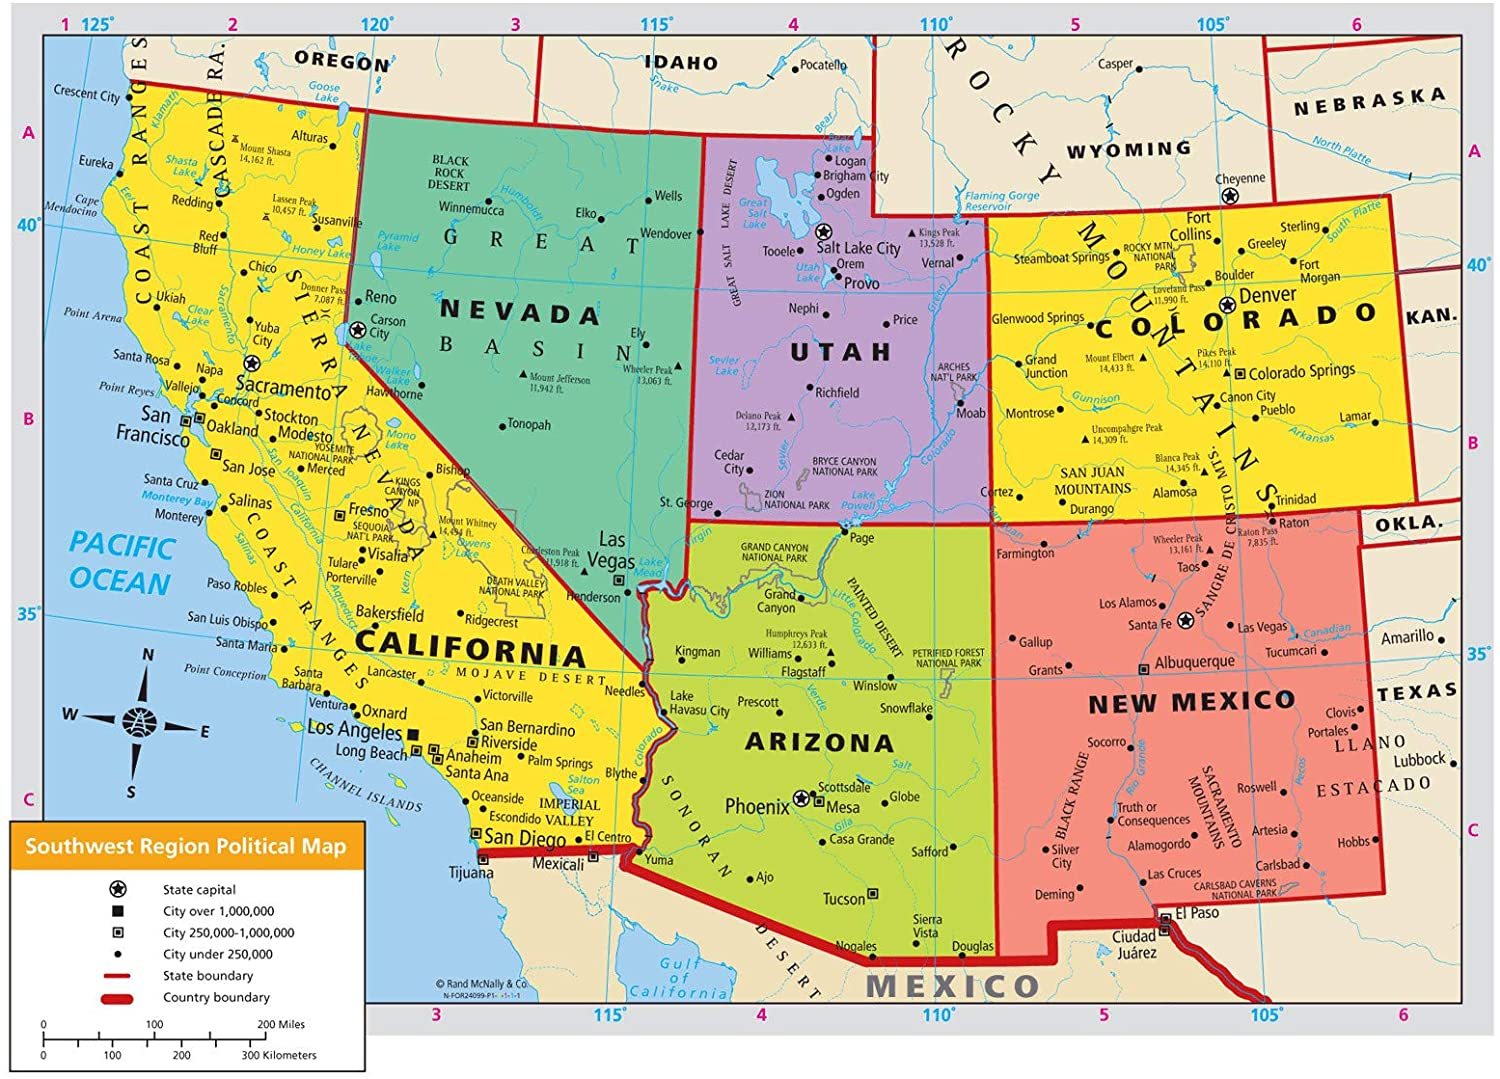 Map Of The Southwestern Us Amazon.com: Map   Us Western Region Road Map The Southwest General